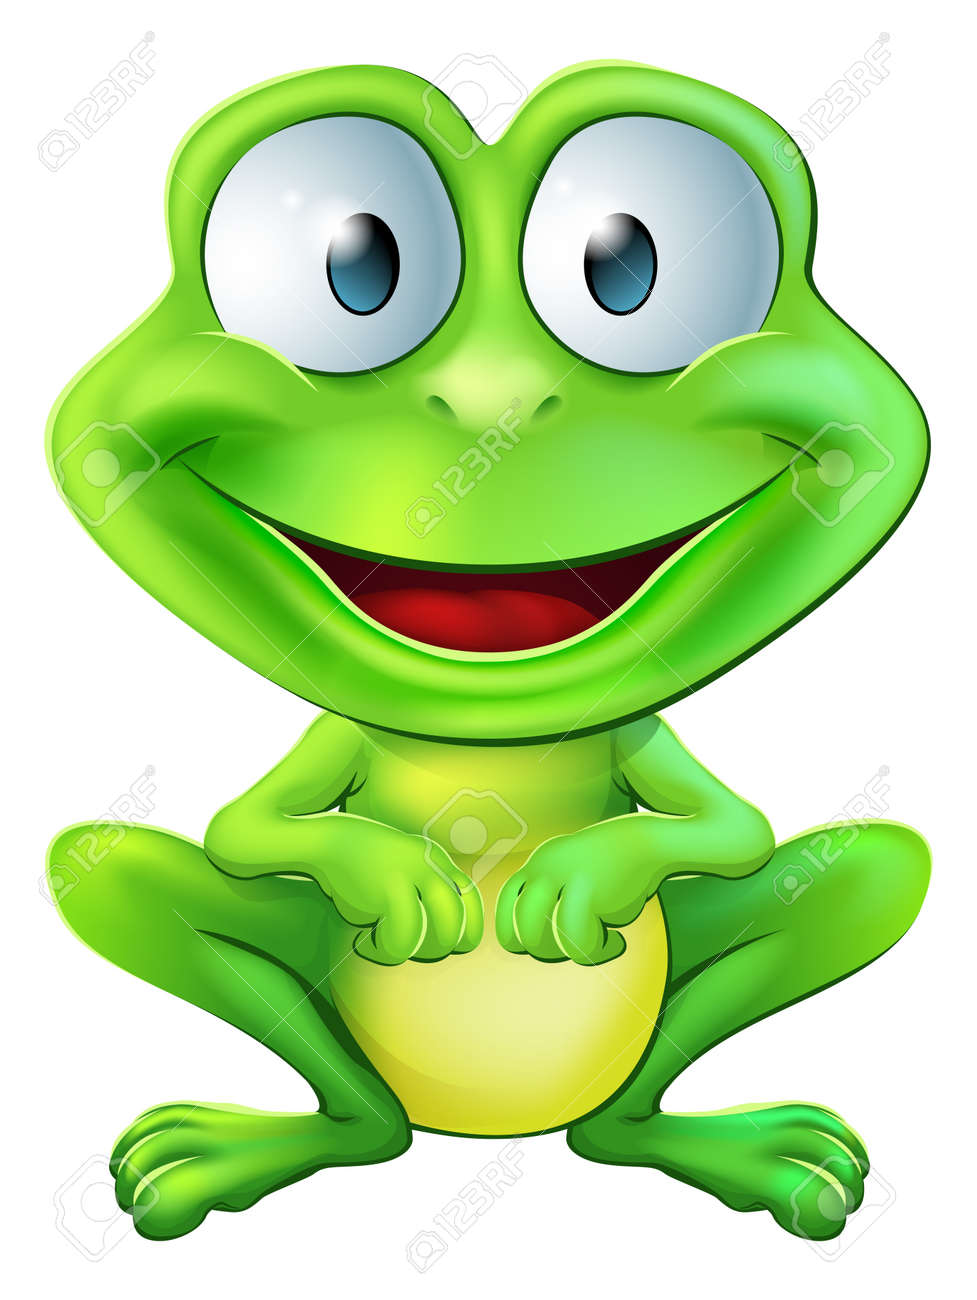 An illustration of a green cute frog character sitting and smiling - 18047975